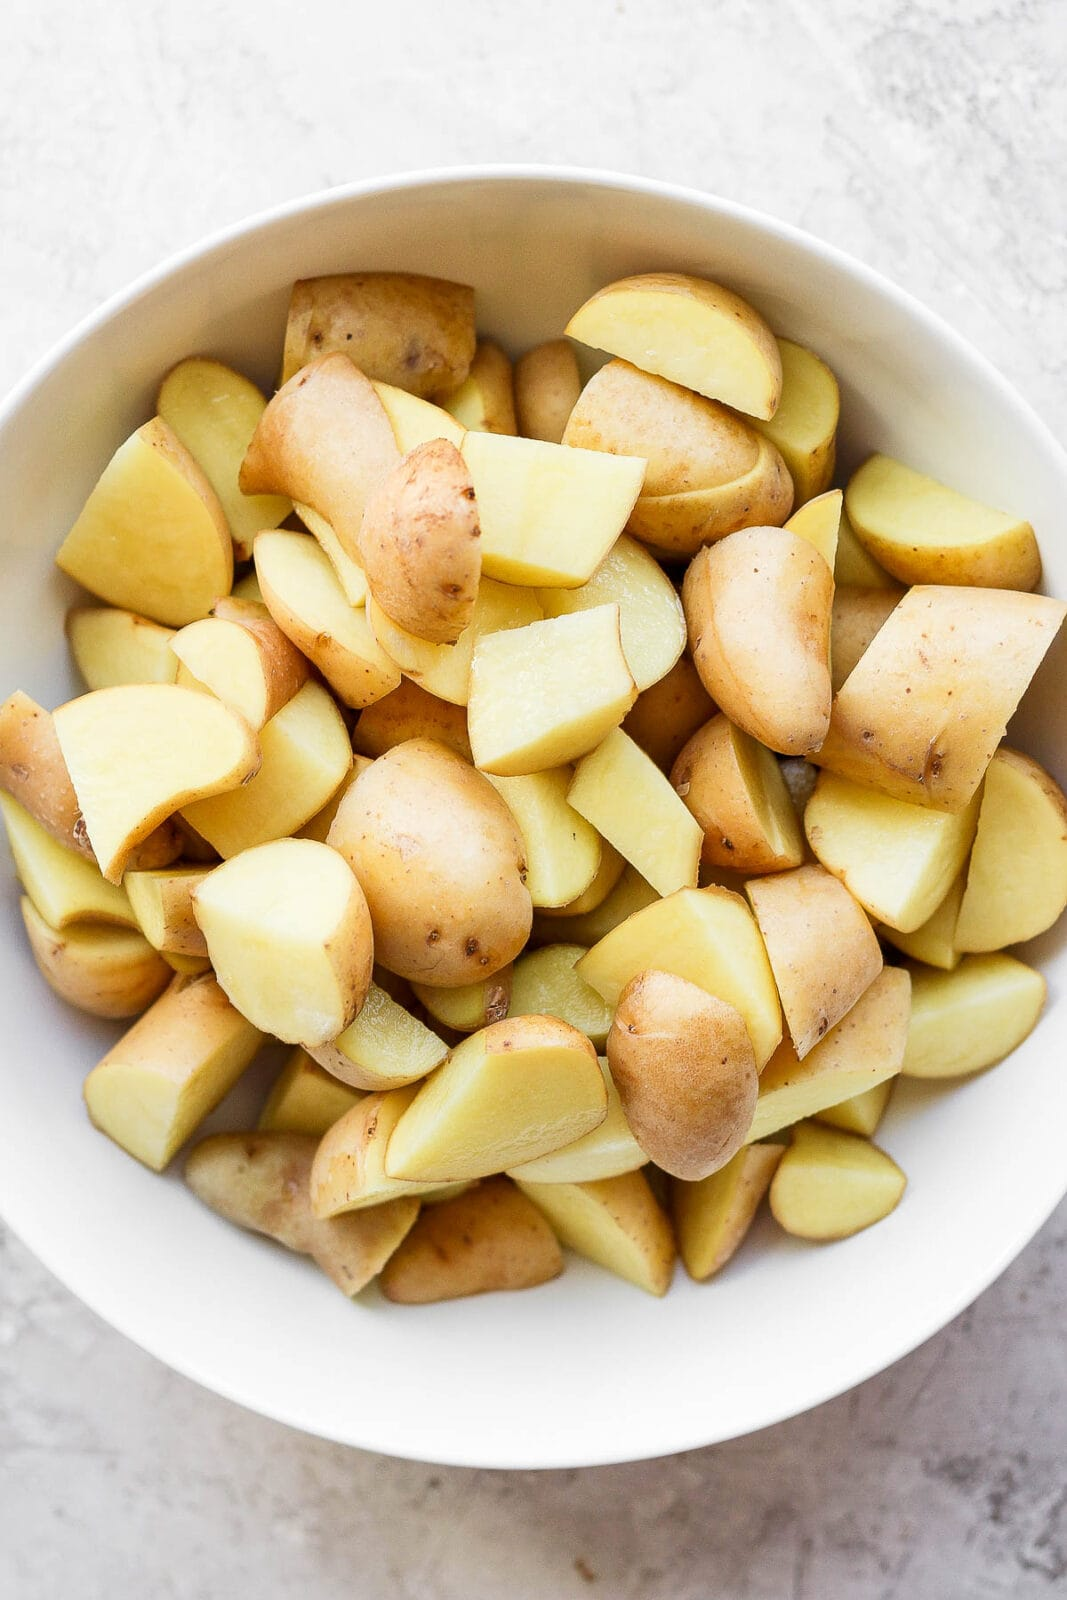 Bowl of cut-up potatoes in a bowl.